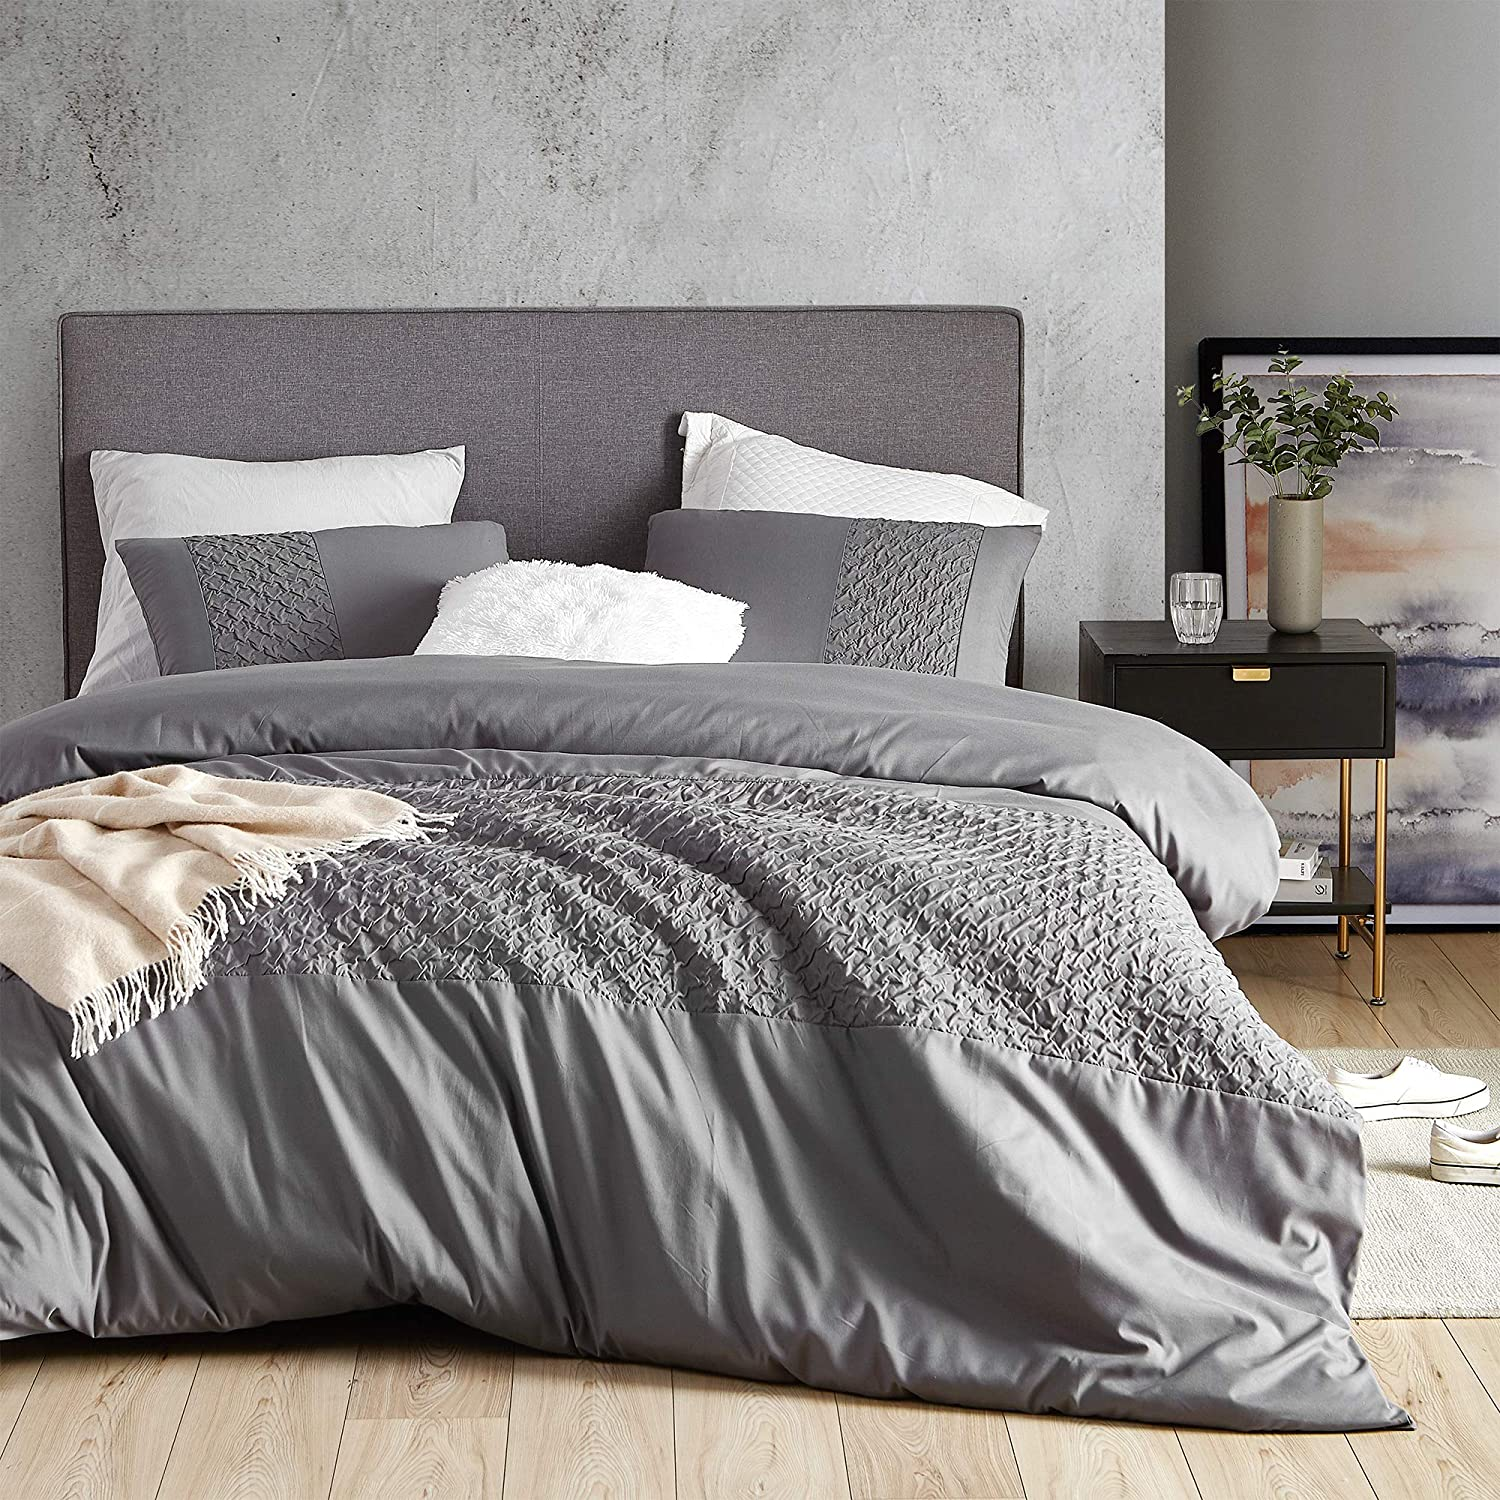 Byourbed Cirrus Gray Twin Duvet Cover - Oversized Twin XL